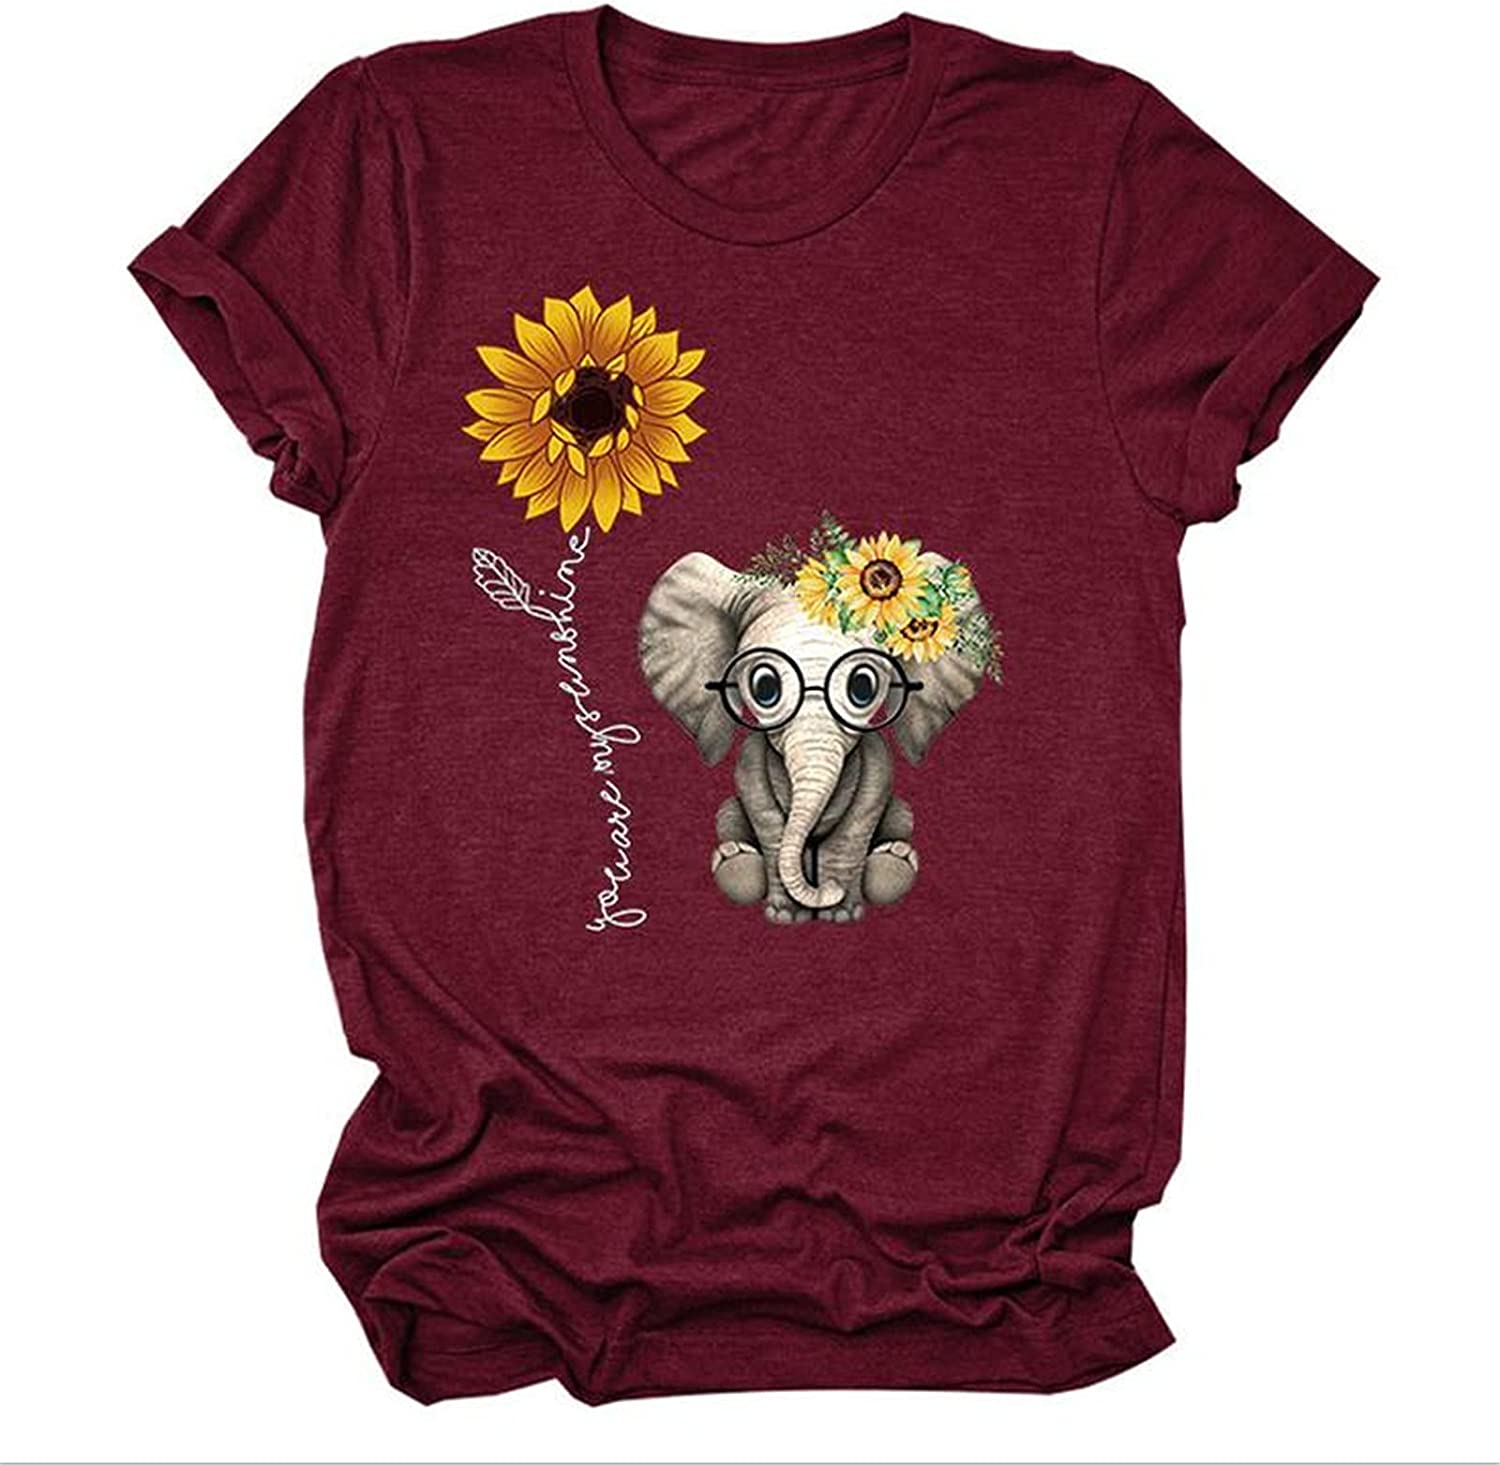 Veloday Summer Tops for Women Trendy, Women's Casual Dandelion Printed Tunic Tees Loose Blouses Funny Graphic T-Shirts